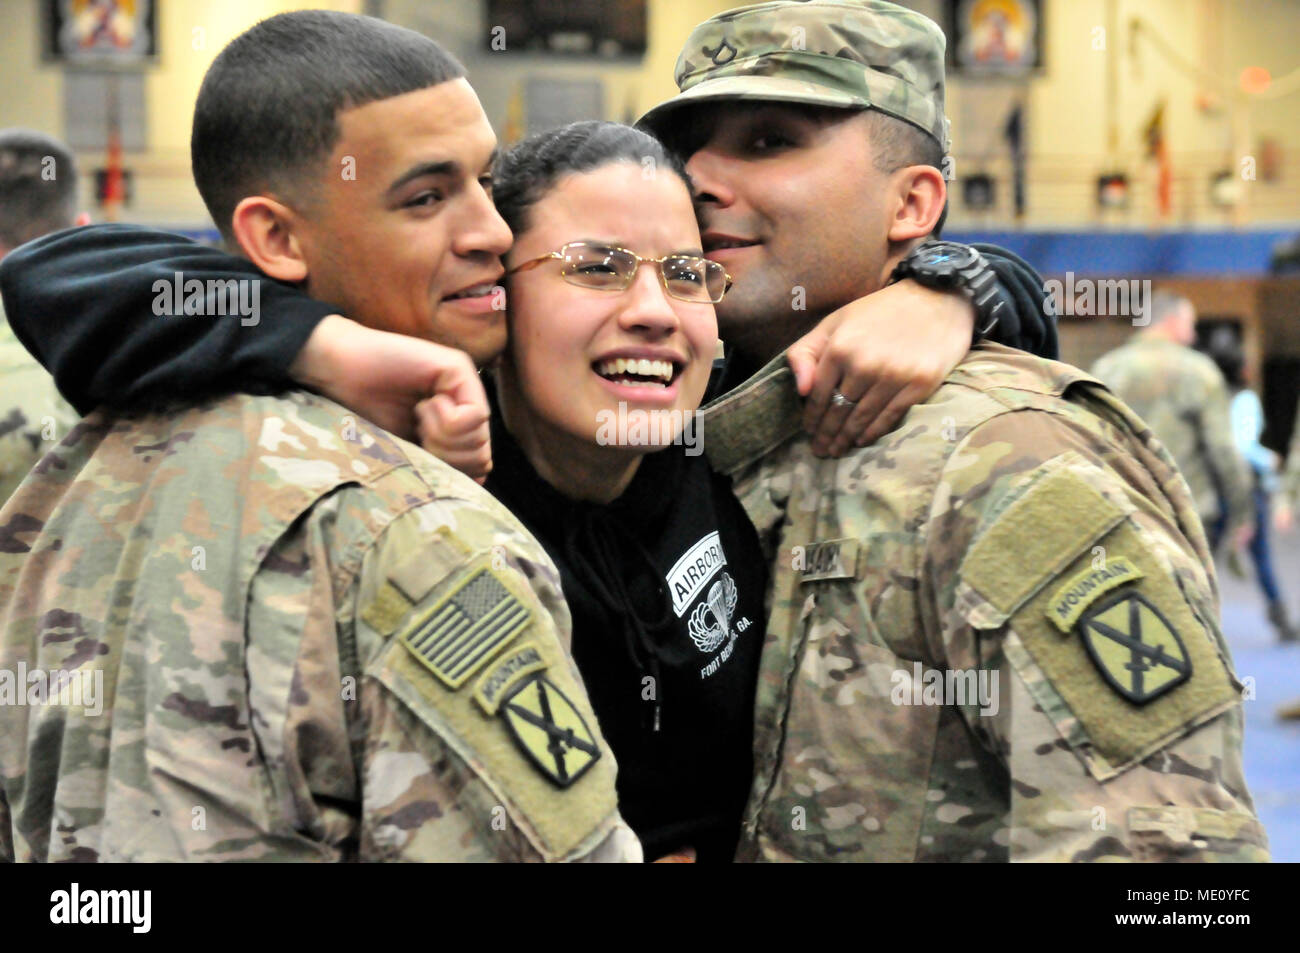 A 548th Combat Sustainment Support Battalion Soldier Middle Embraces Her Friends Spc Terence Powell Left And Pfc Guadalupe Cavazos Right